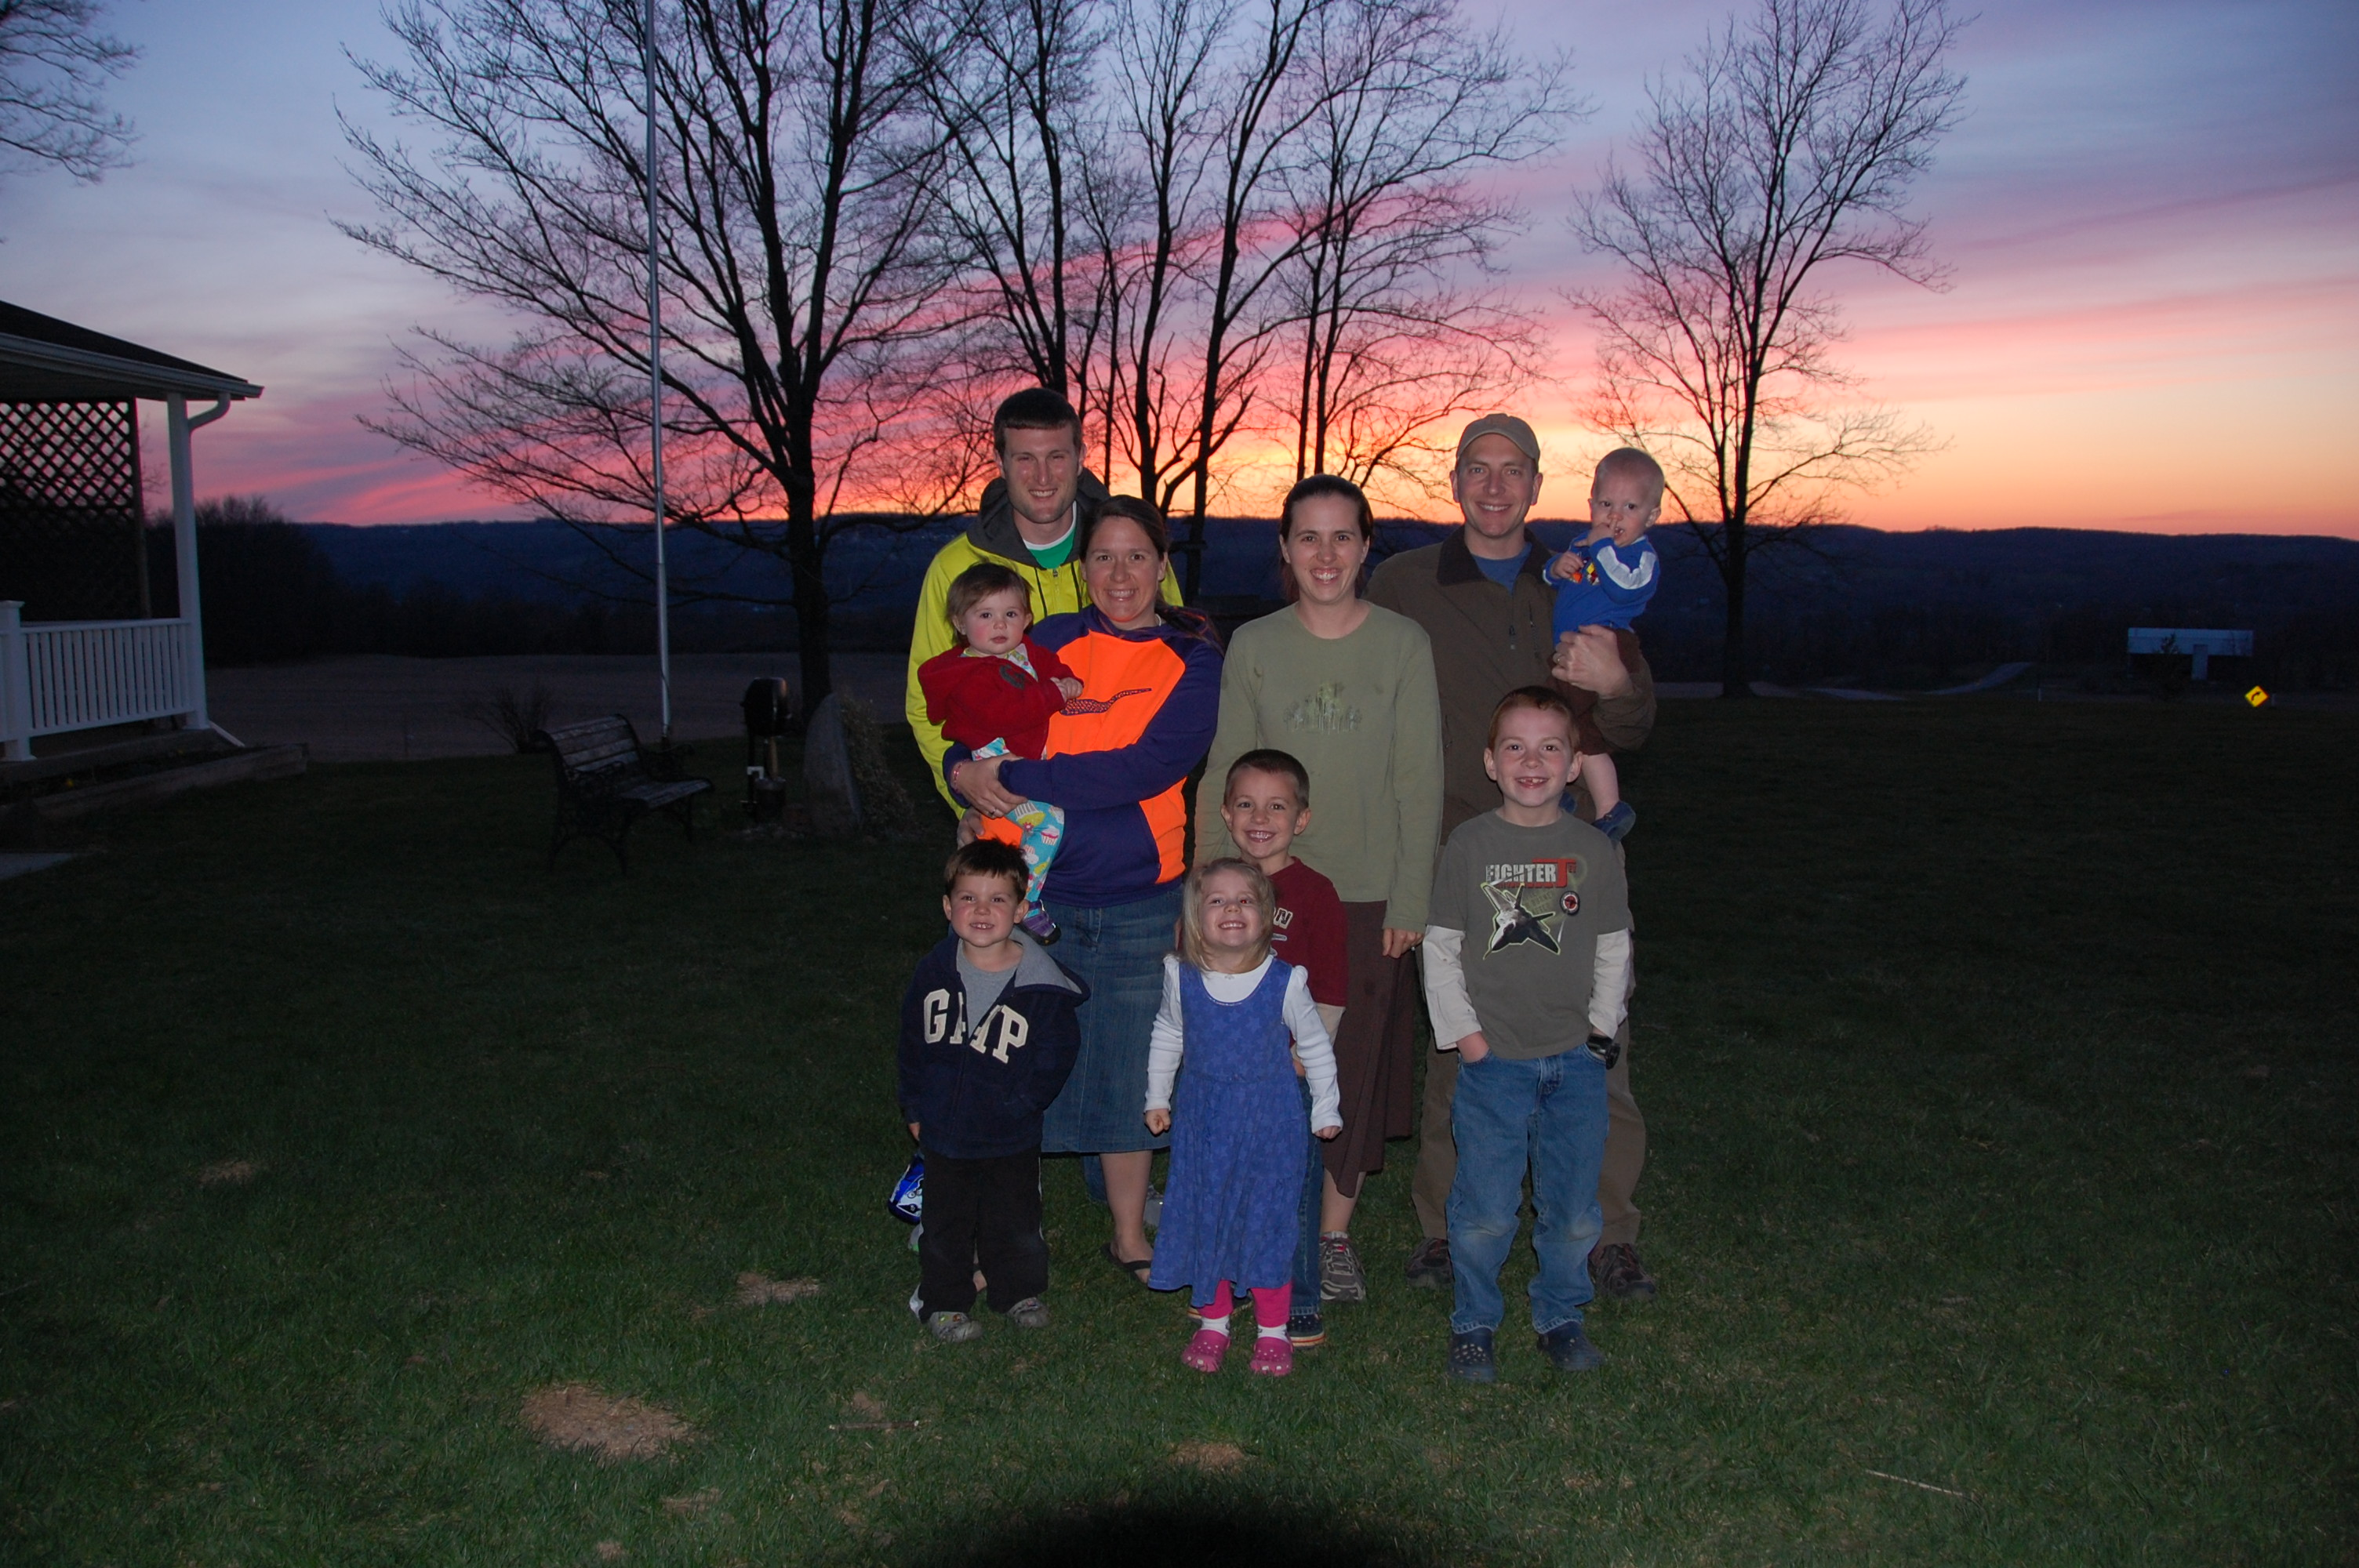 Our traveling party with the beautiful sunset.